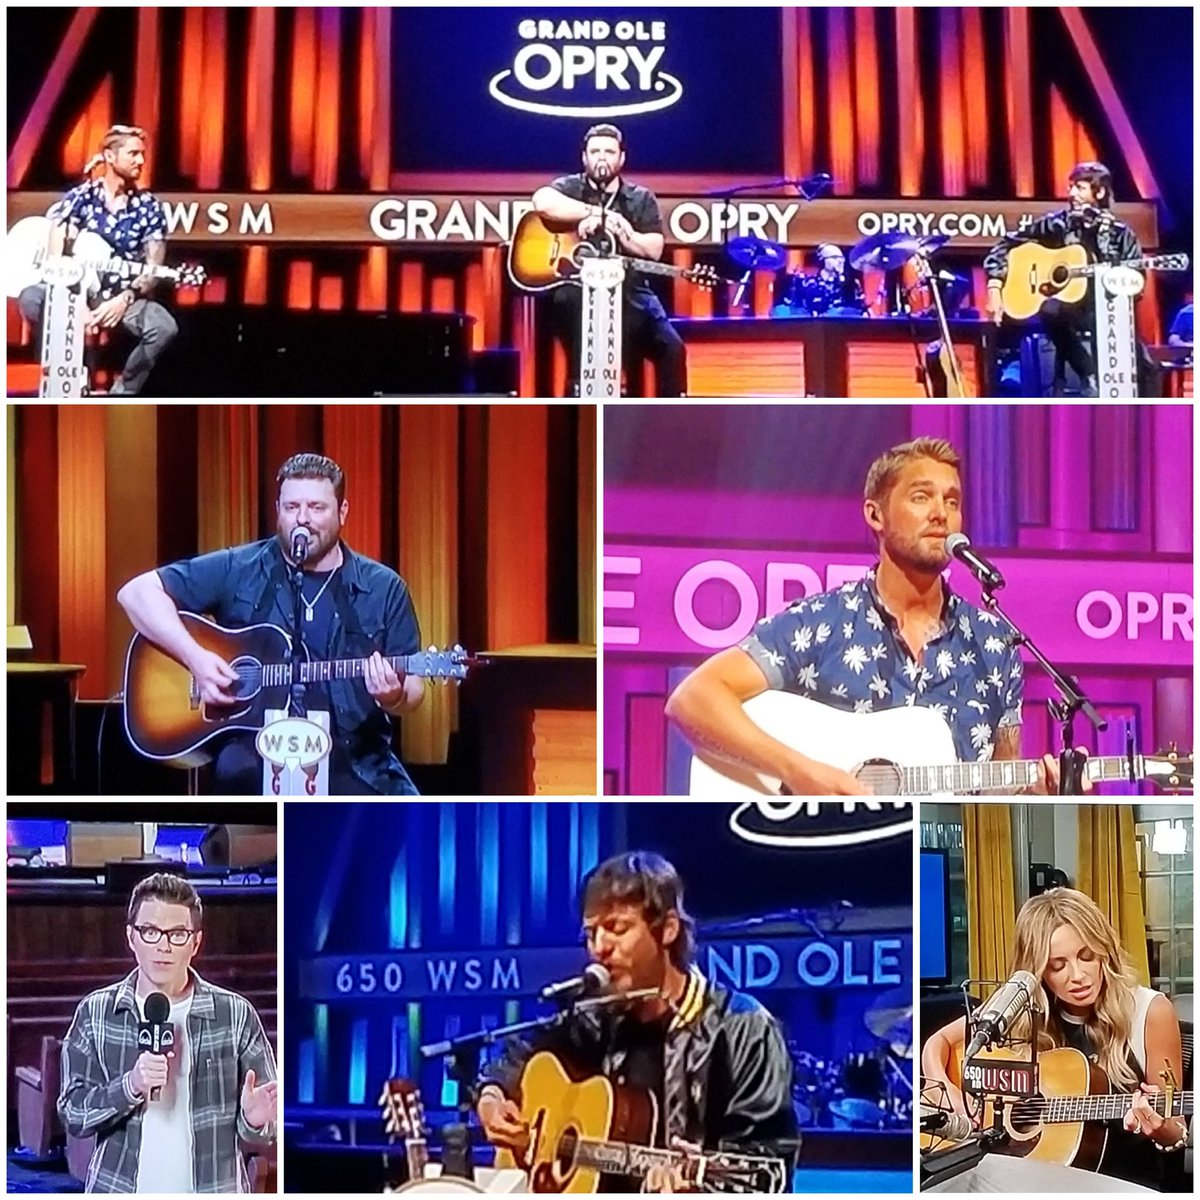 Love Saturday Night during Covid19 thanks to @opry & @CircleAllAccess! @carlypearce you started the night off 💗. Loved listening to @janson_chris @ChrisYoungMusic @BrettYoungMusic . @mrBobbyBones cant wait to see what the surprise is in a few weeks!!!! ❤🤠🎶